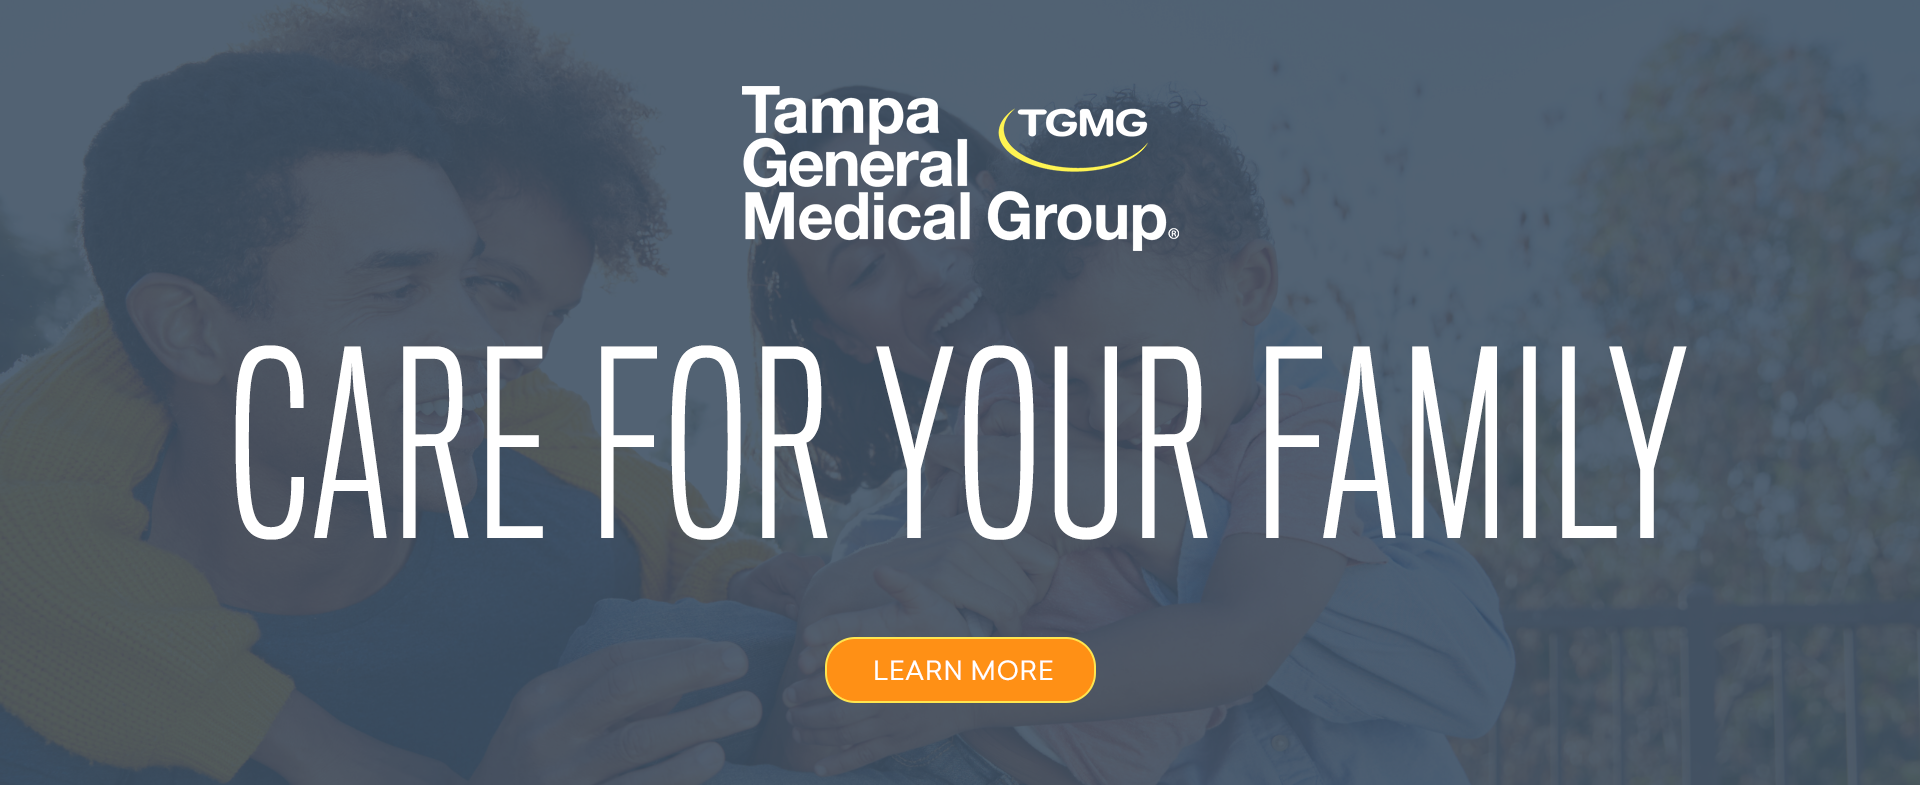 TGMG care for your family